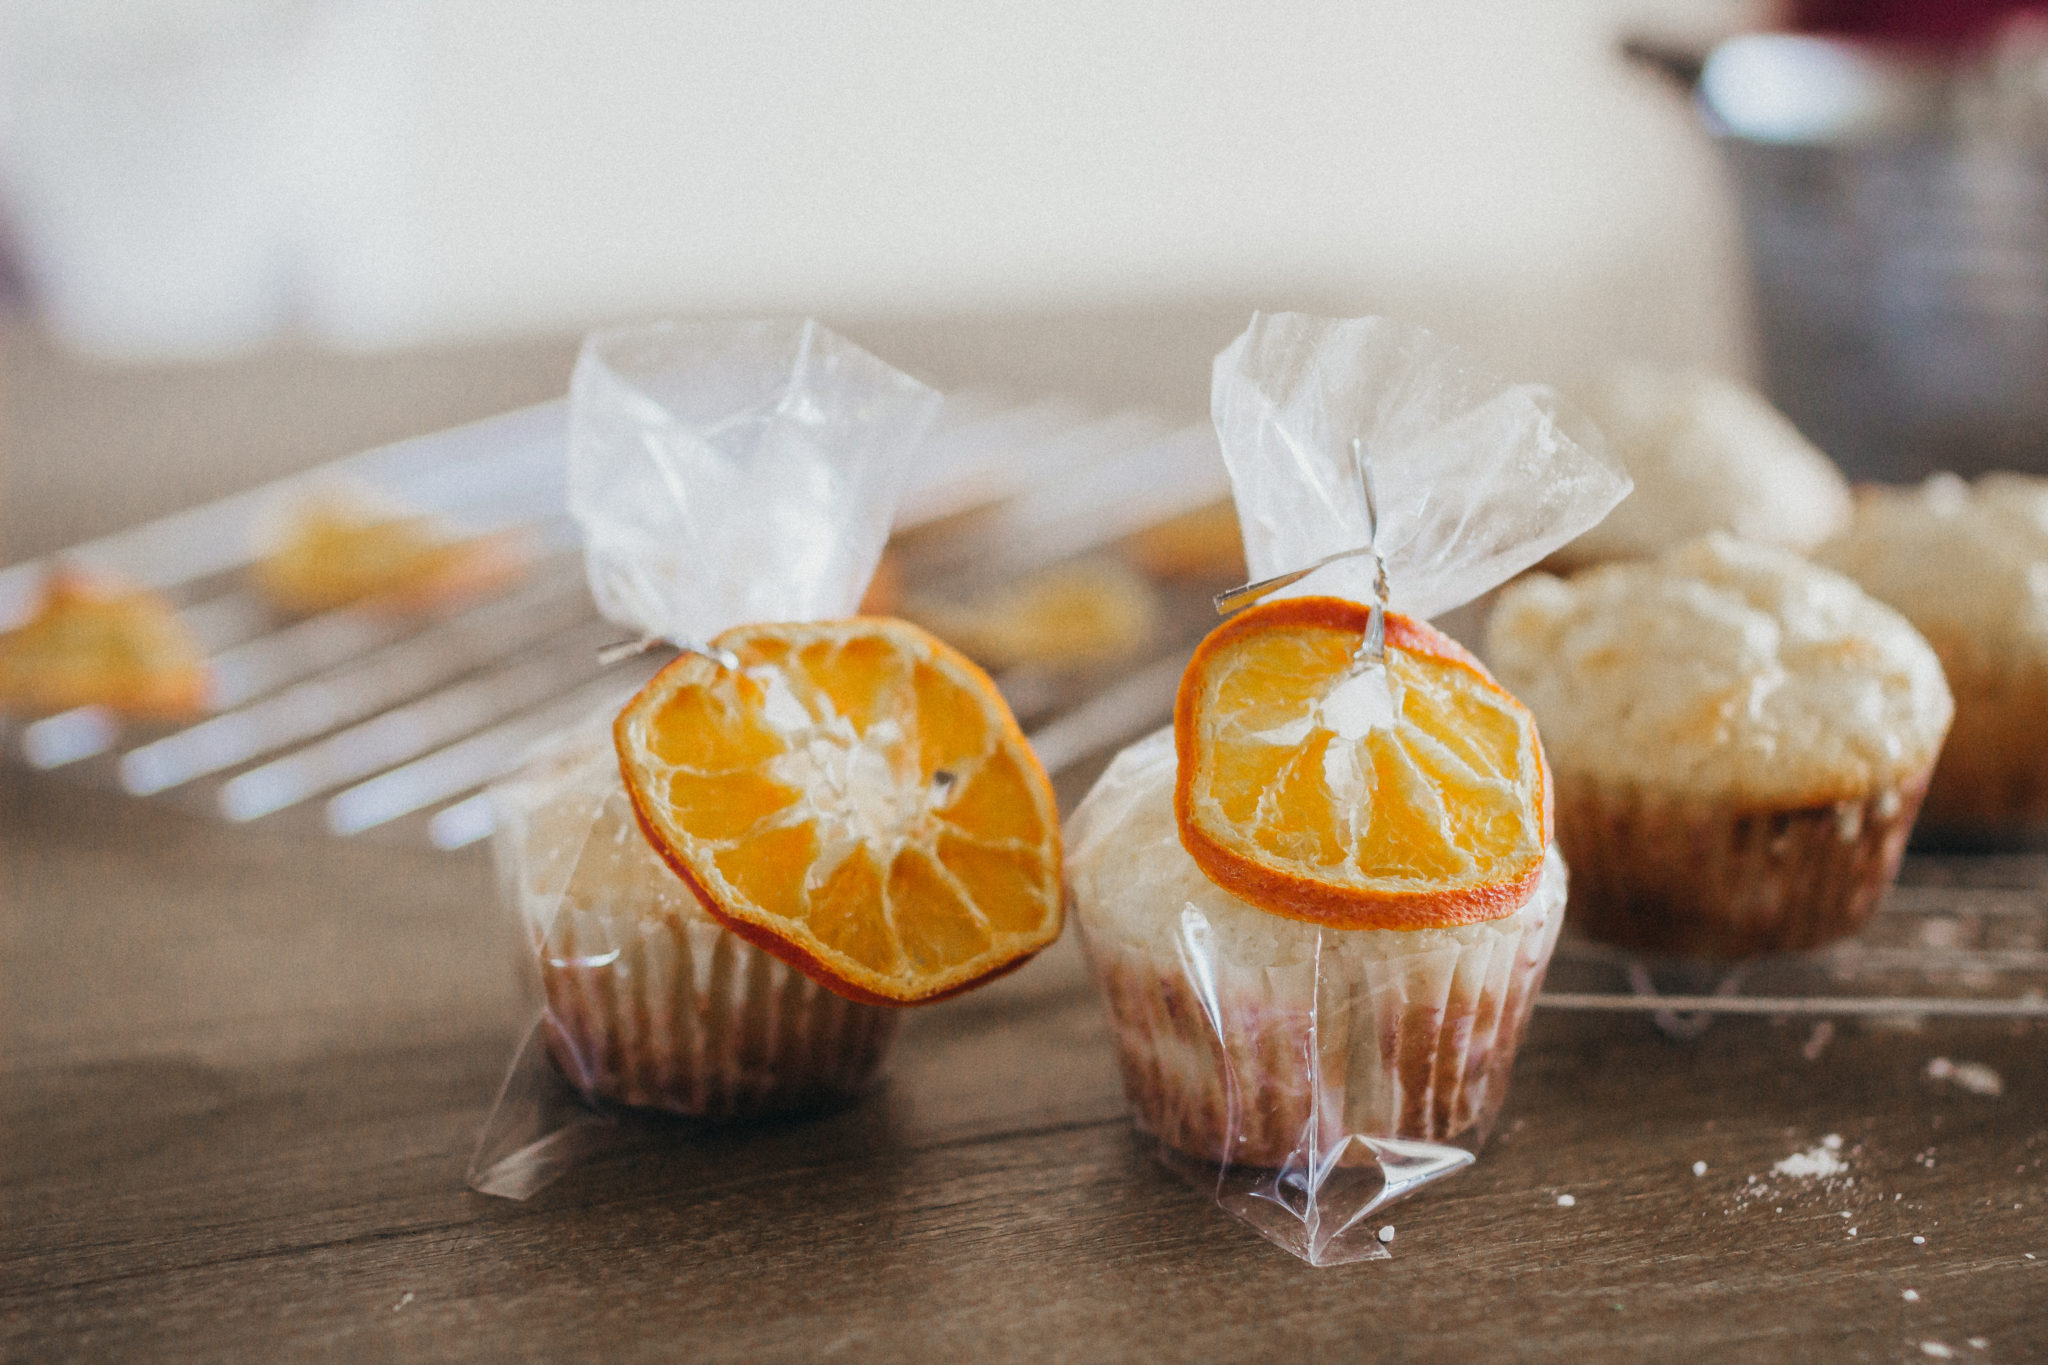 Orange Muffin recipe with yogurt and whole oranges, teaching kids kindness with Cuties #100daysofsunshine #ad